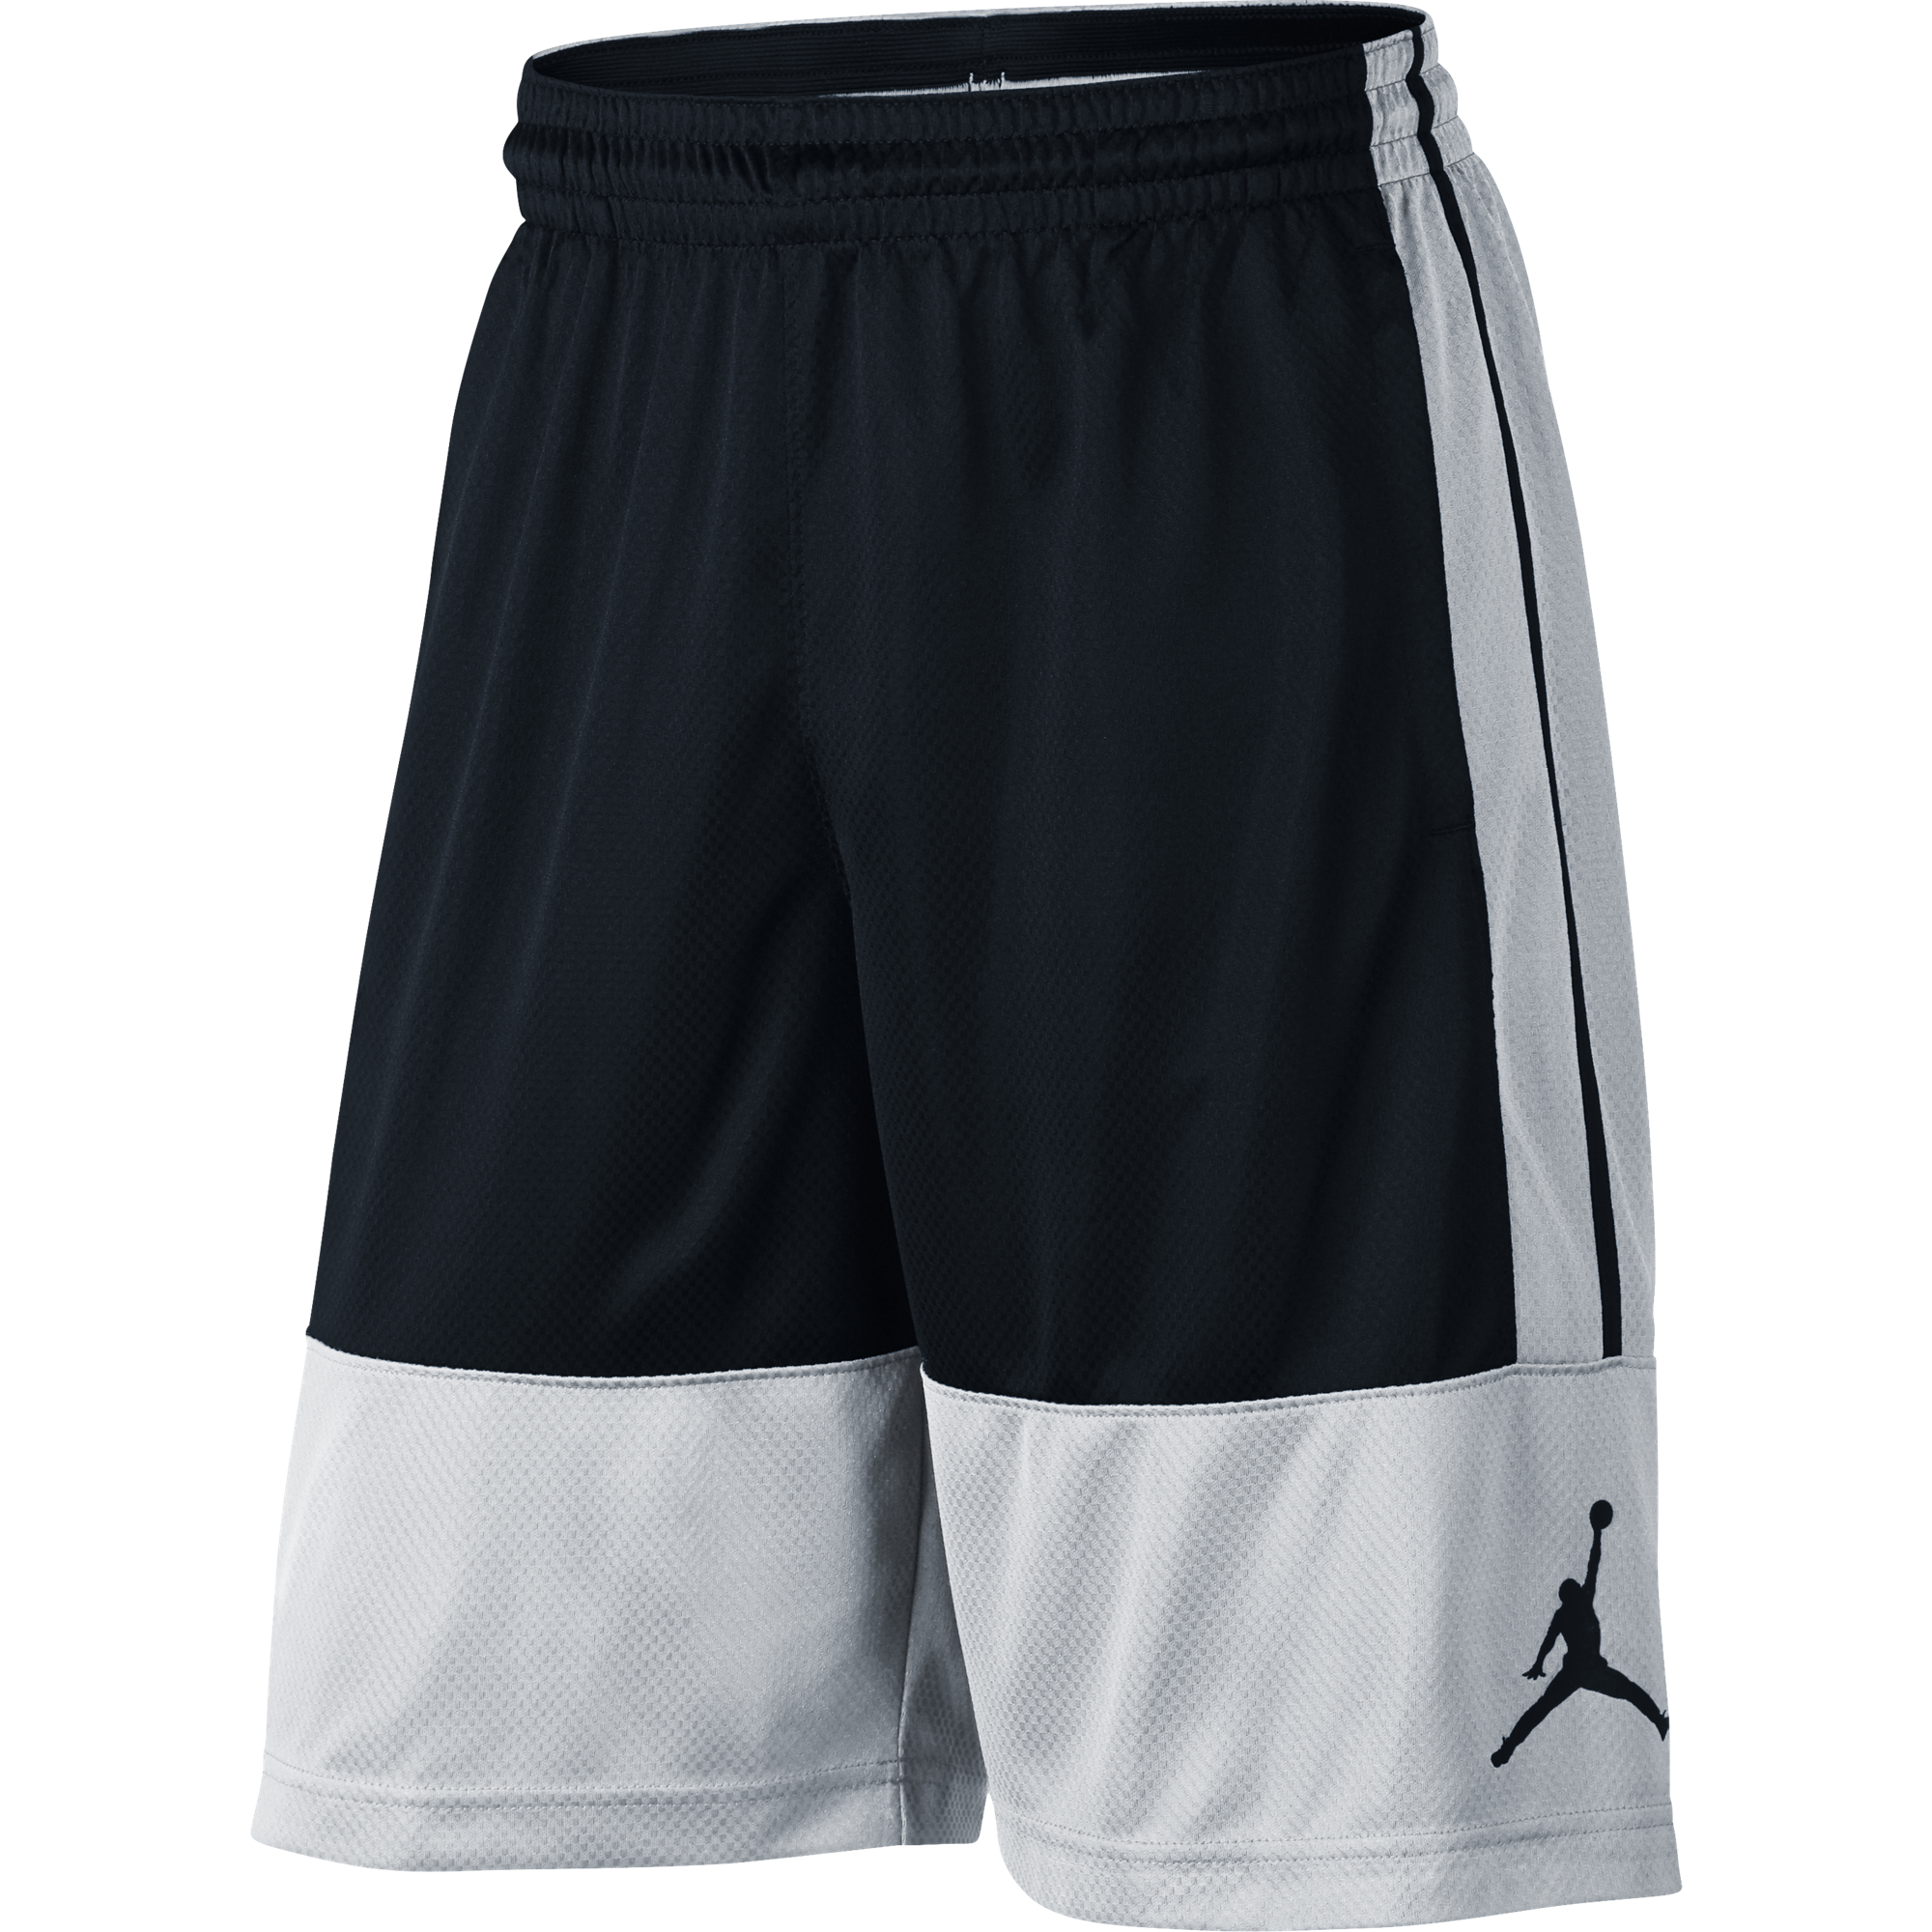 03d59c5e85d399 AIR JORDAN RISE SOLID SHORTS for £30.00